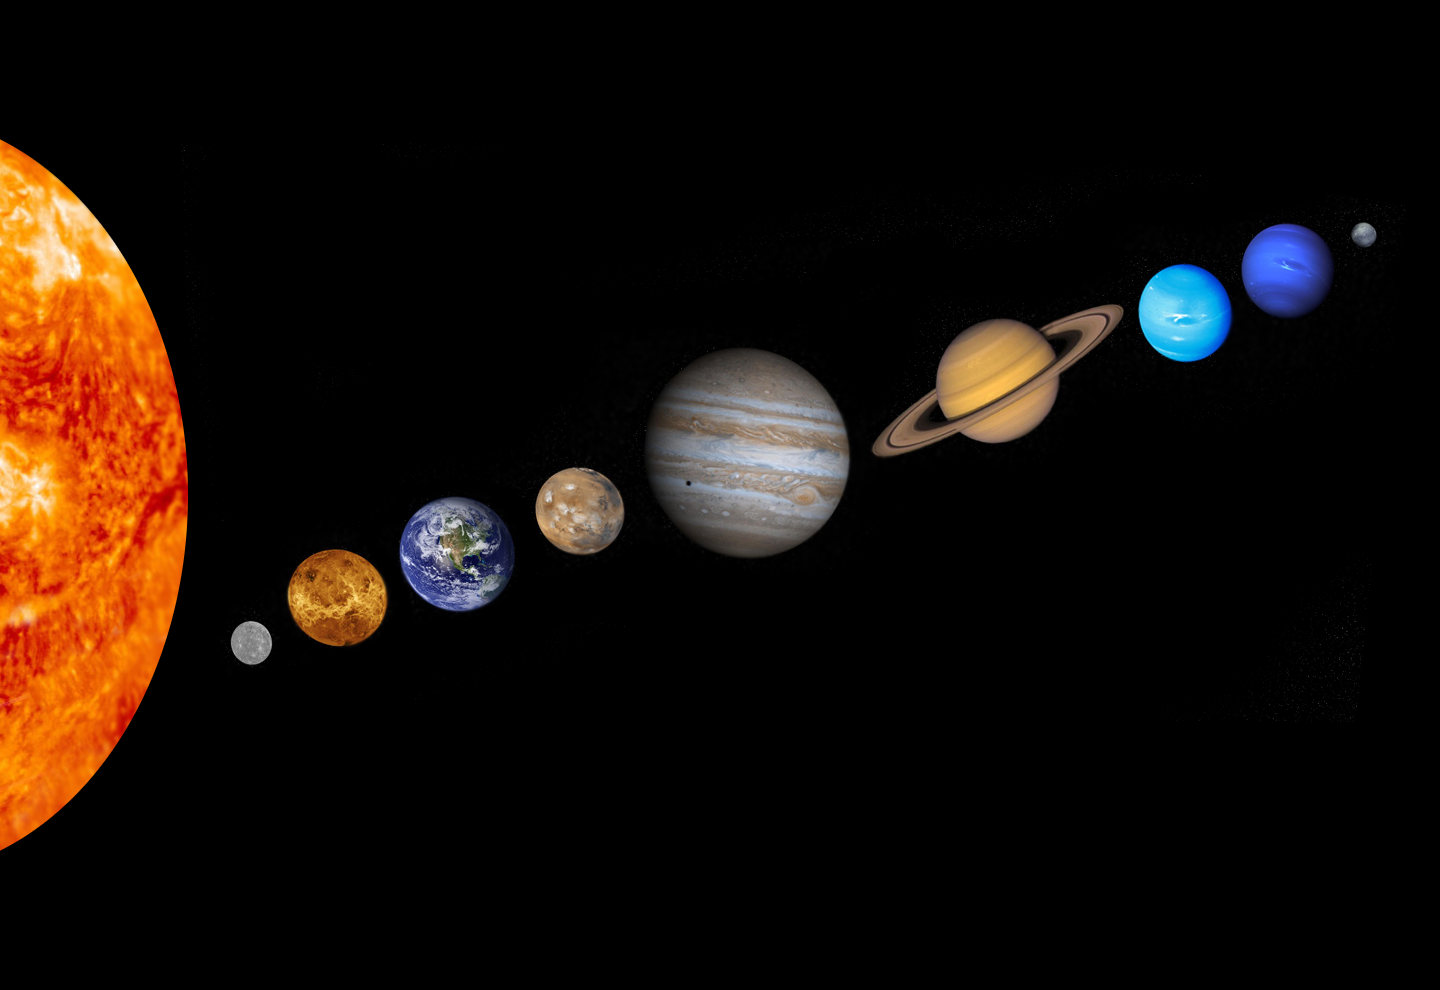 solar system images - 1085×746